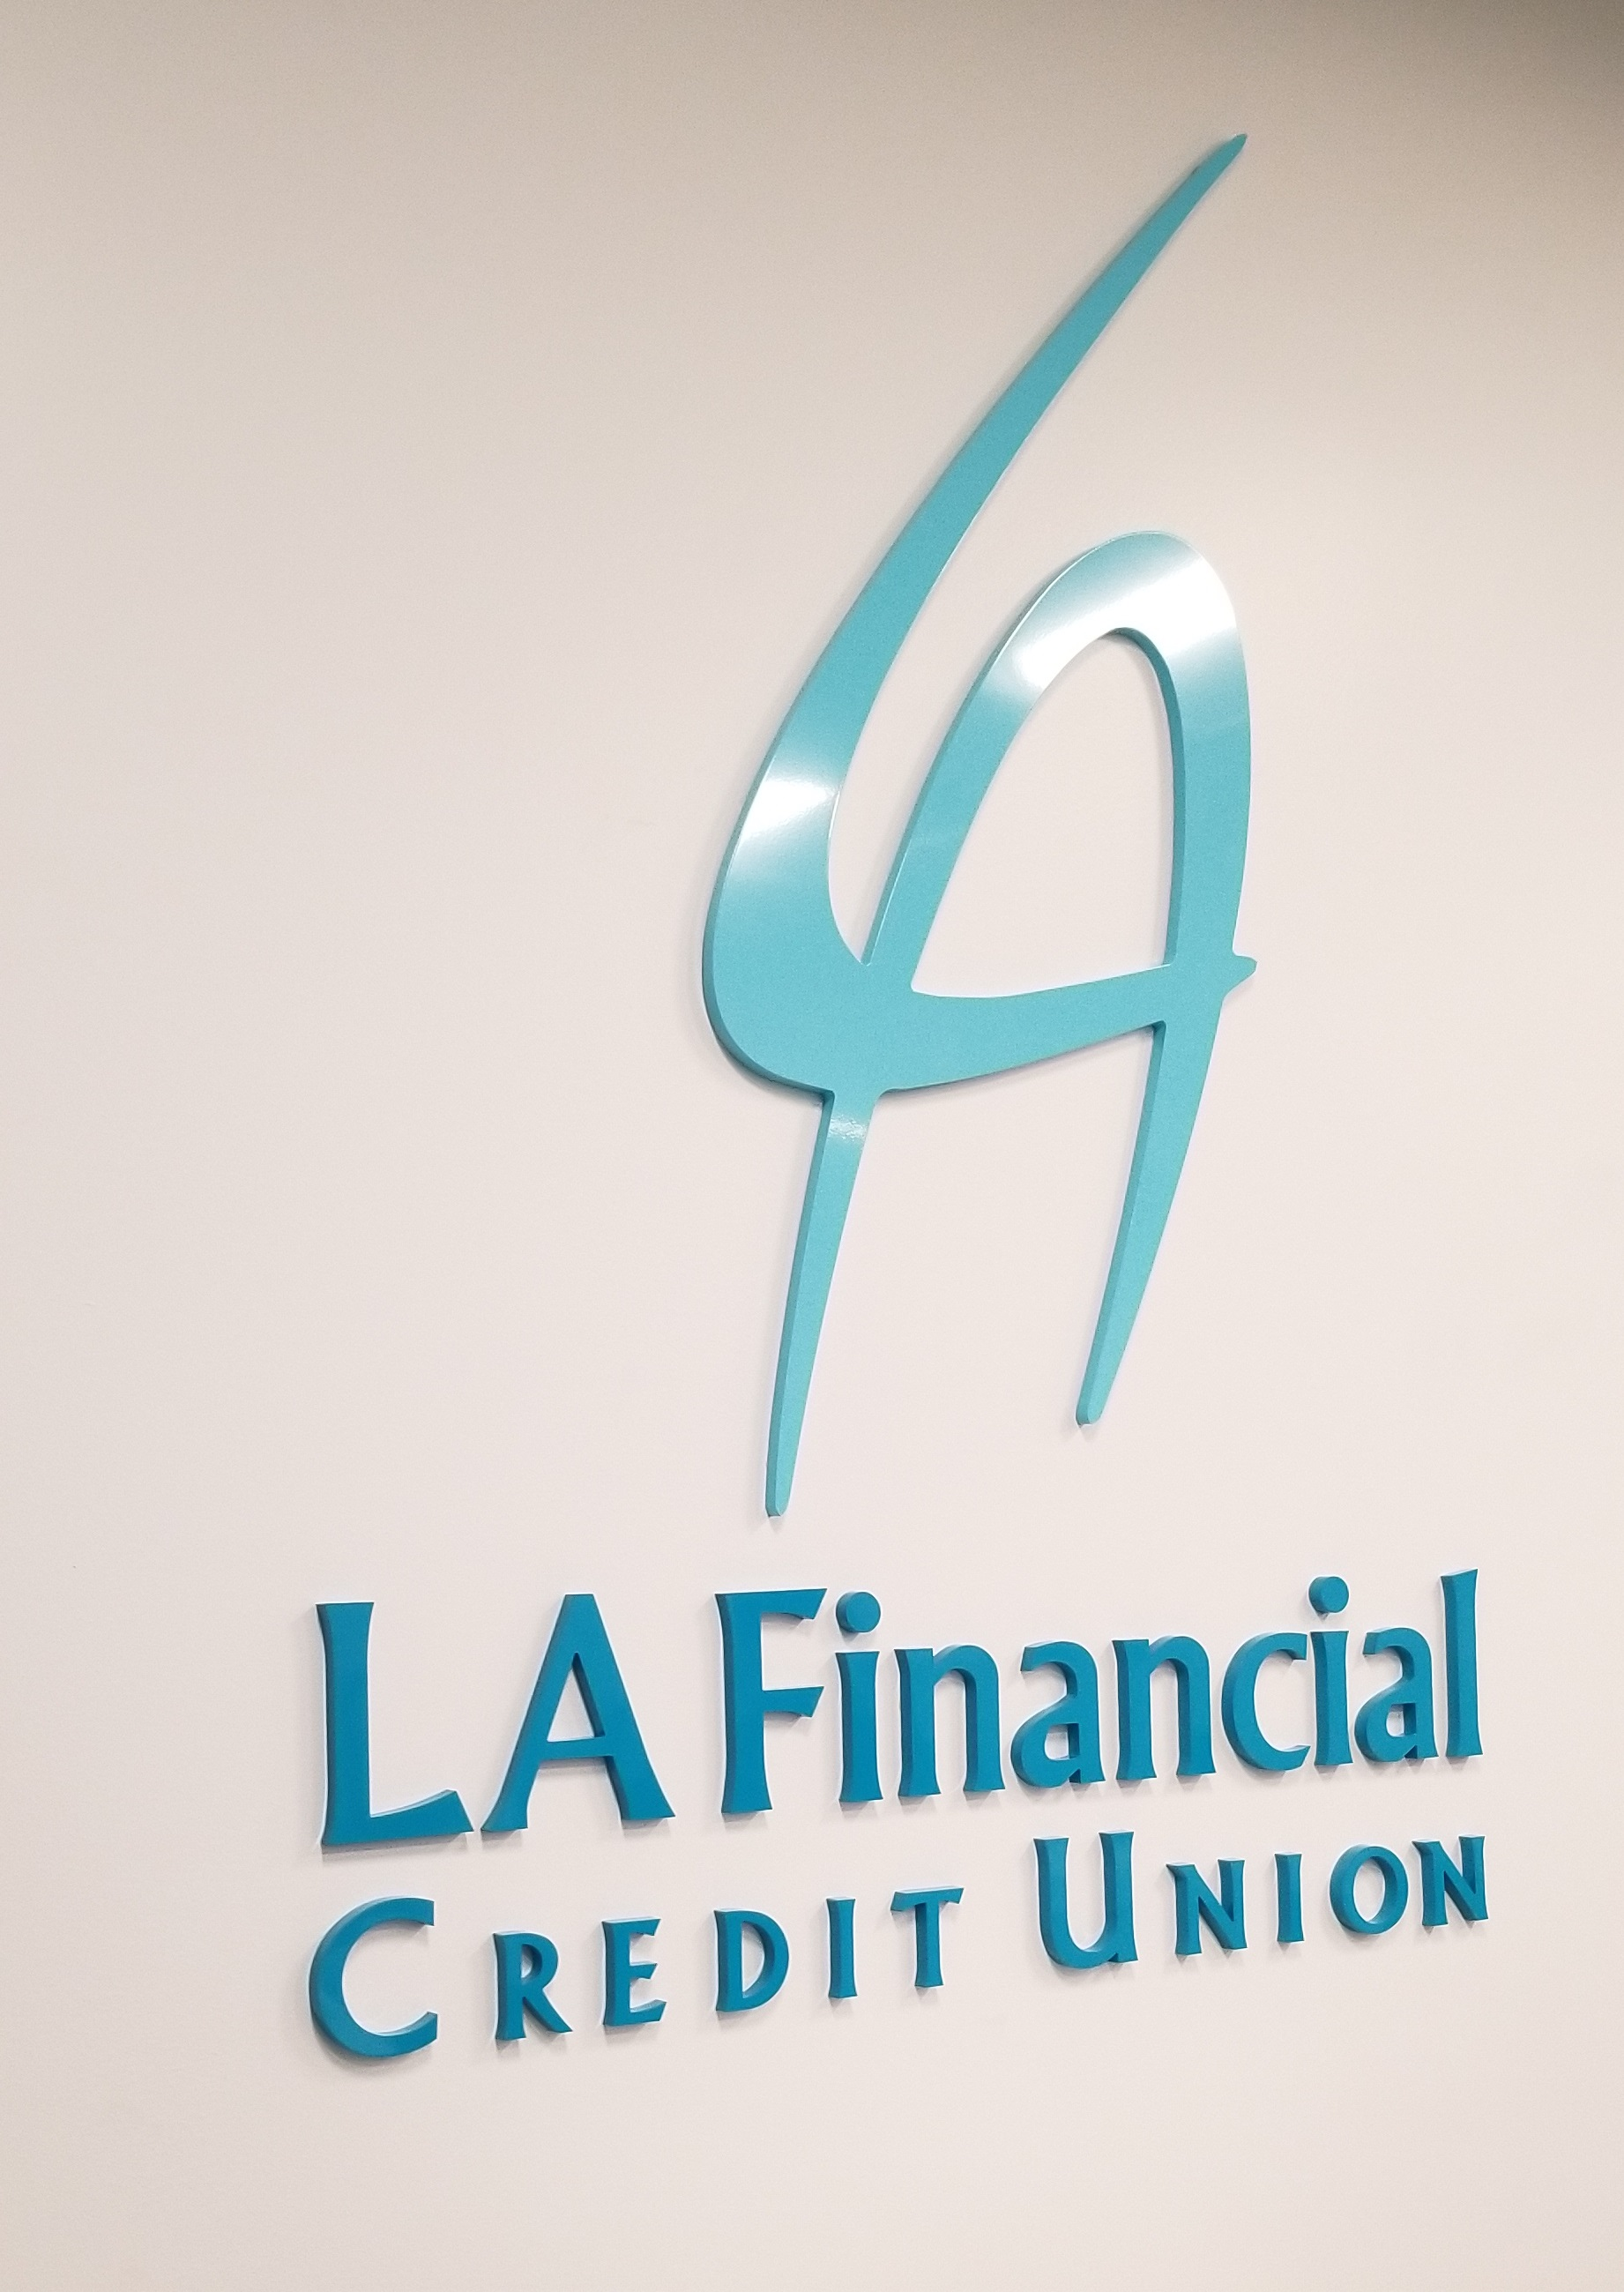 Part of a business sign package for LA Financial, this office lobby sign will definitely spruce up their workplace and make it more eye-catching for clients